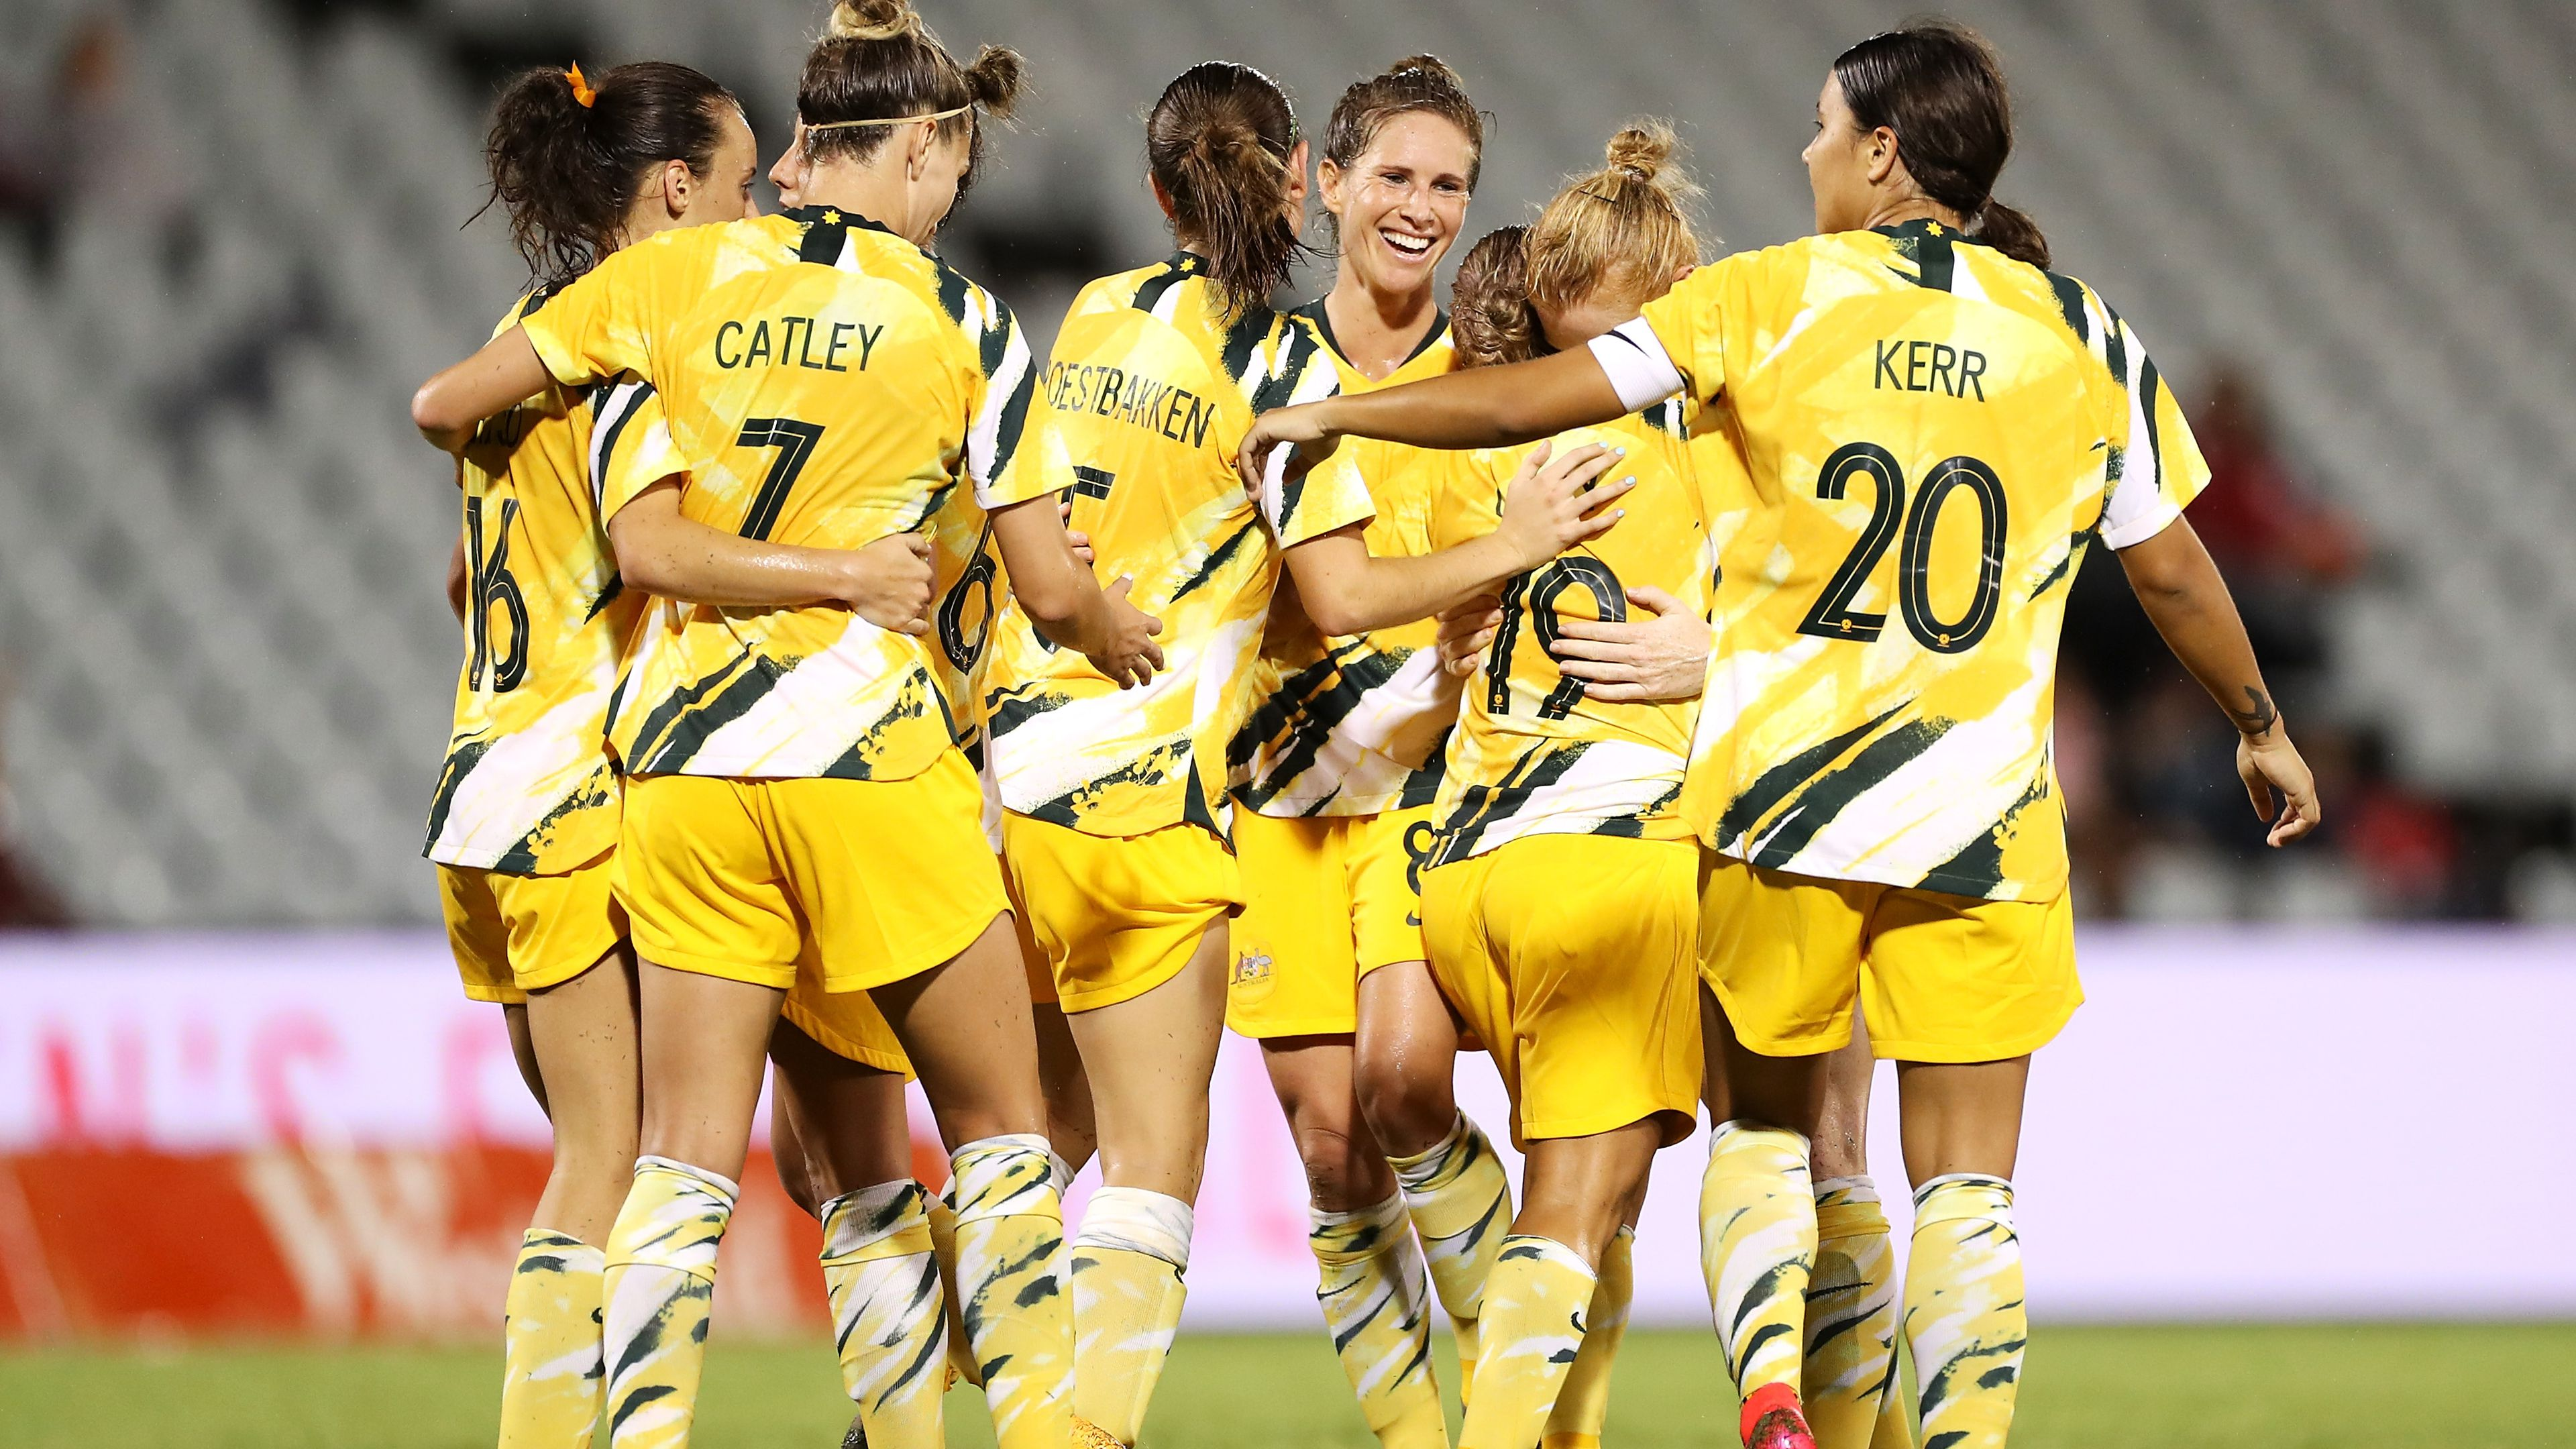 Katrina Gorry of the Matildas celebrates with her team mates after scoring a goal during the Women's Olympic Football Tournament Qualifier match between the Australian Matildas and Chinese Taiepi at Campbelltown Sports Stadium on February 07, 2020.